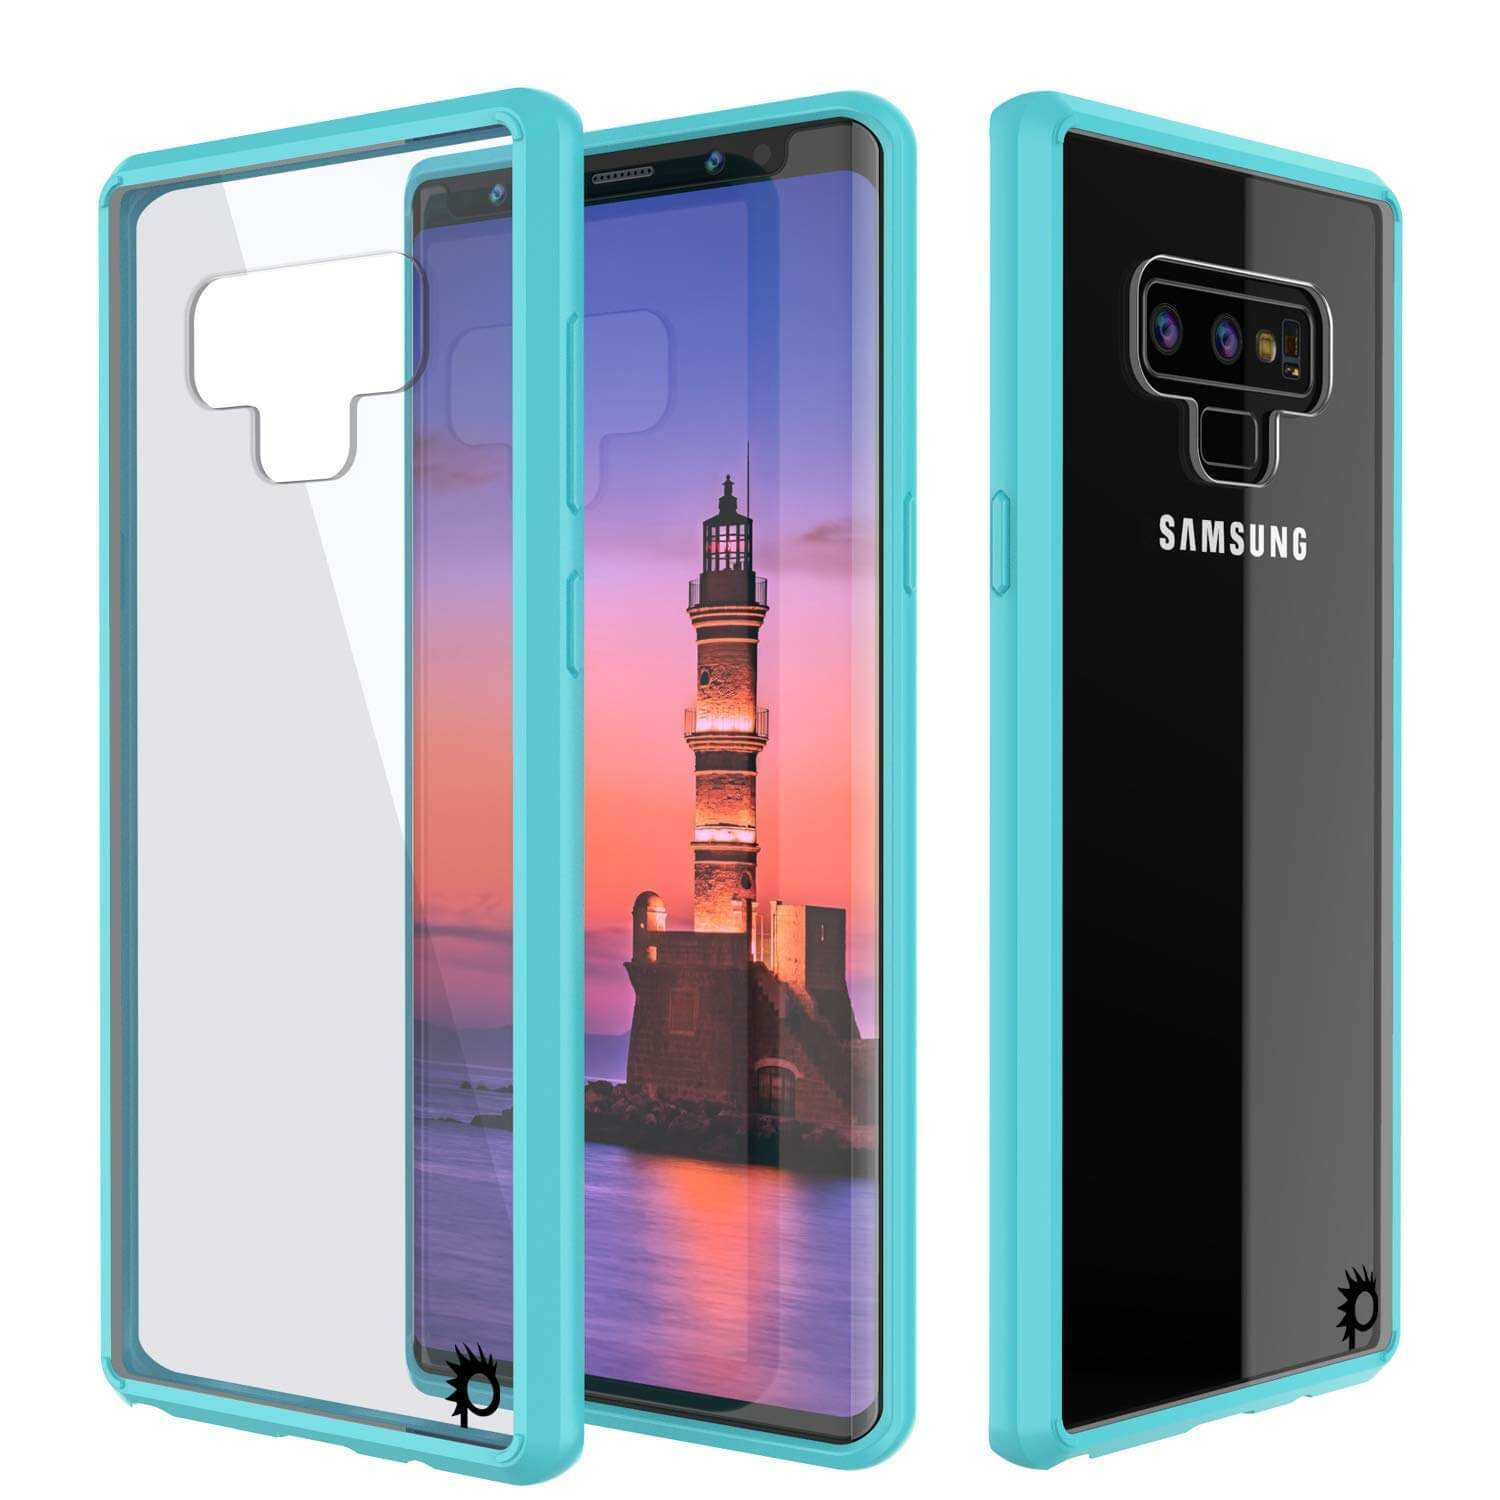 Galaxy Note 9 Case, PUNKcase [LUCID 2.0 Series] [Slim Fit] Armor Cover W/Integrated Anti-Shock System [Teal]